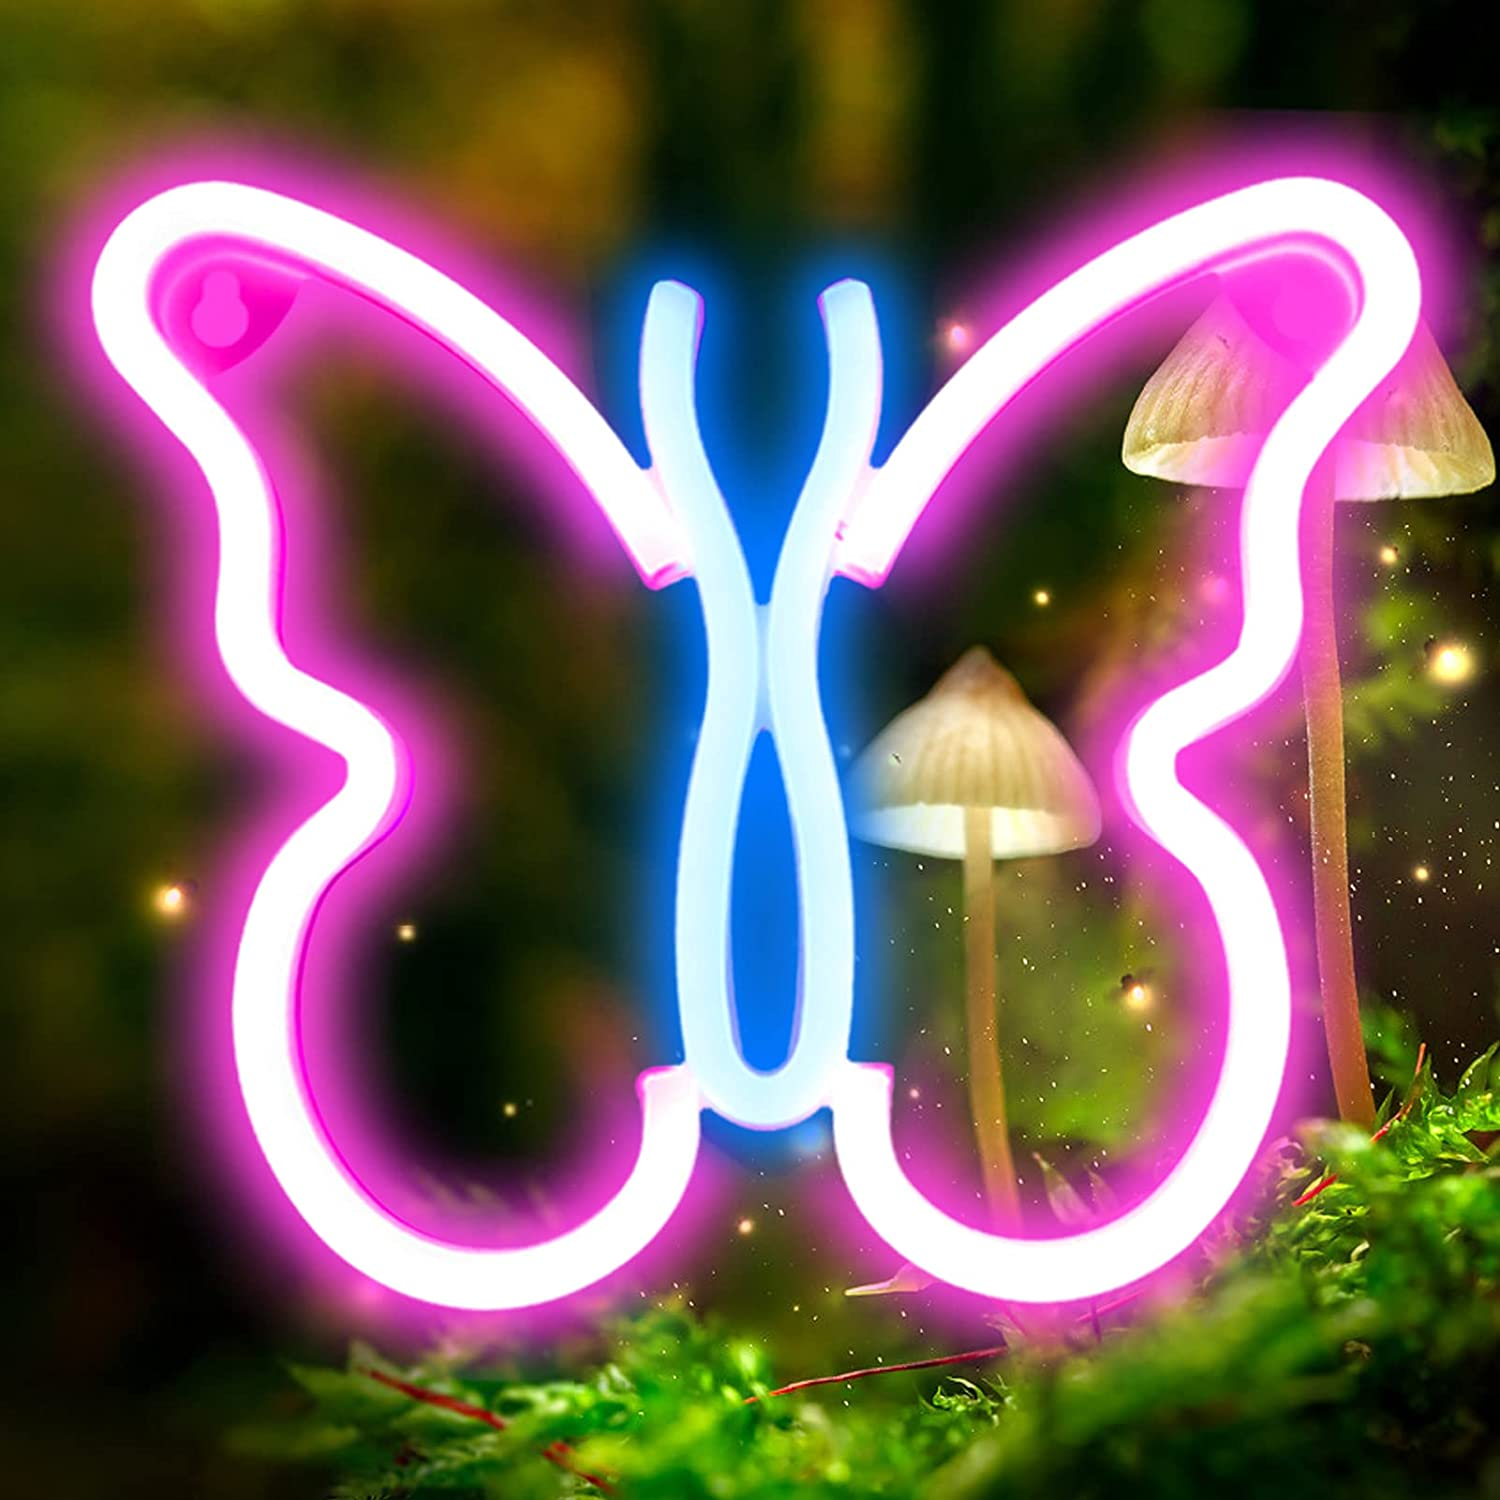 XIYUNTE Butterfly Neon Sign - Battery or USB Powered Neon Light for Wall Decor, Pink/Blue Led Neon Lighs Butterfly Neon Signs Light up for Bedroom, Living Room, Kids Room, Birthday Party